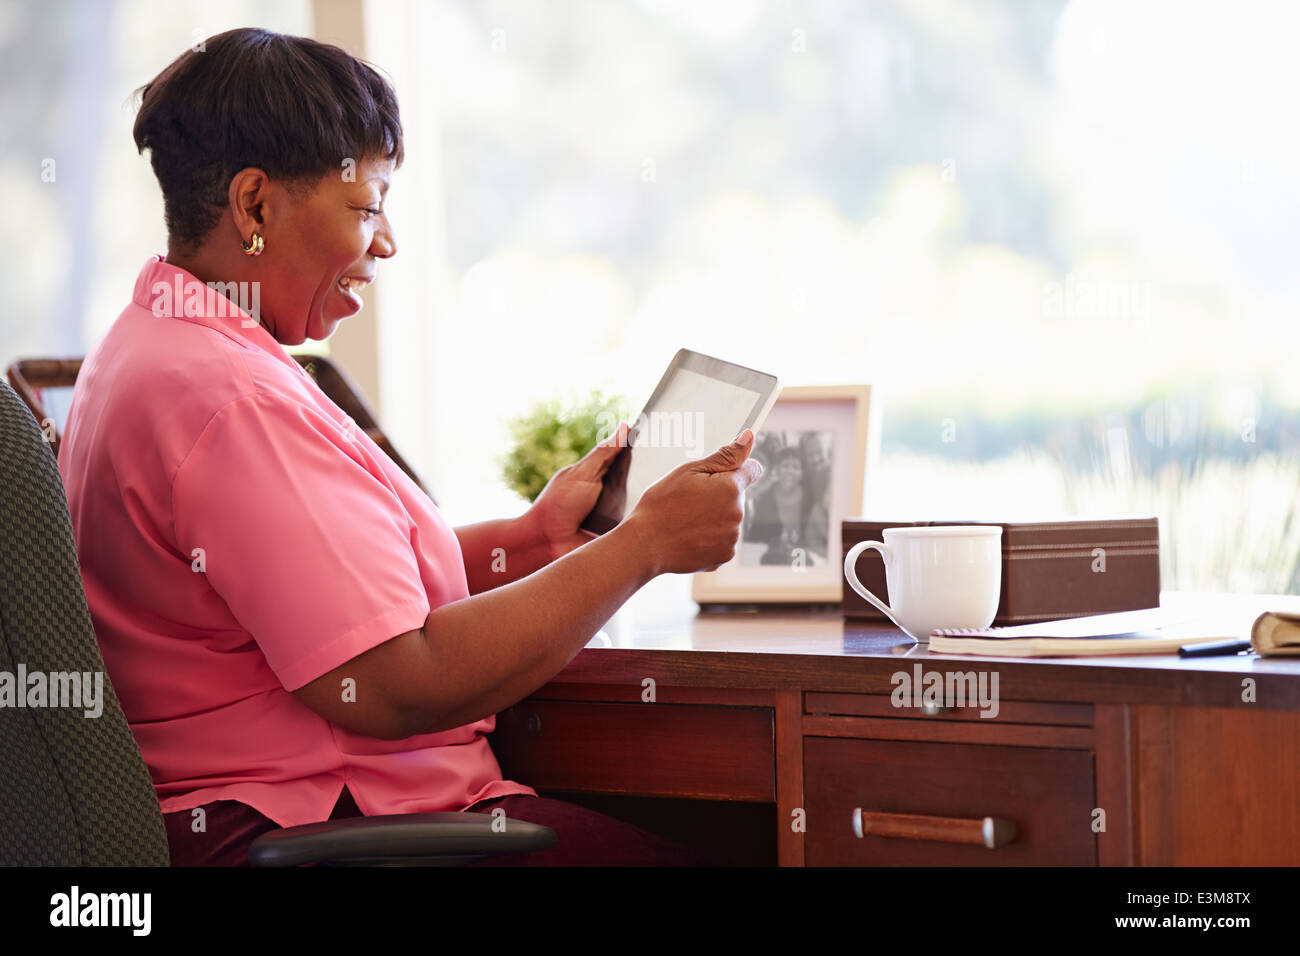 Mature Woman Using Digital Tablet On Desk At Home - Stock Image